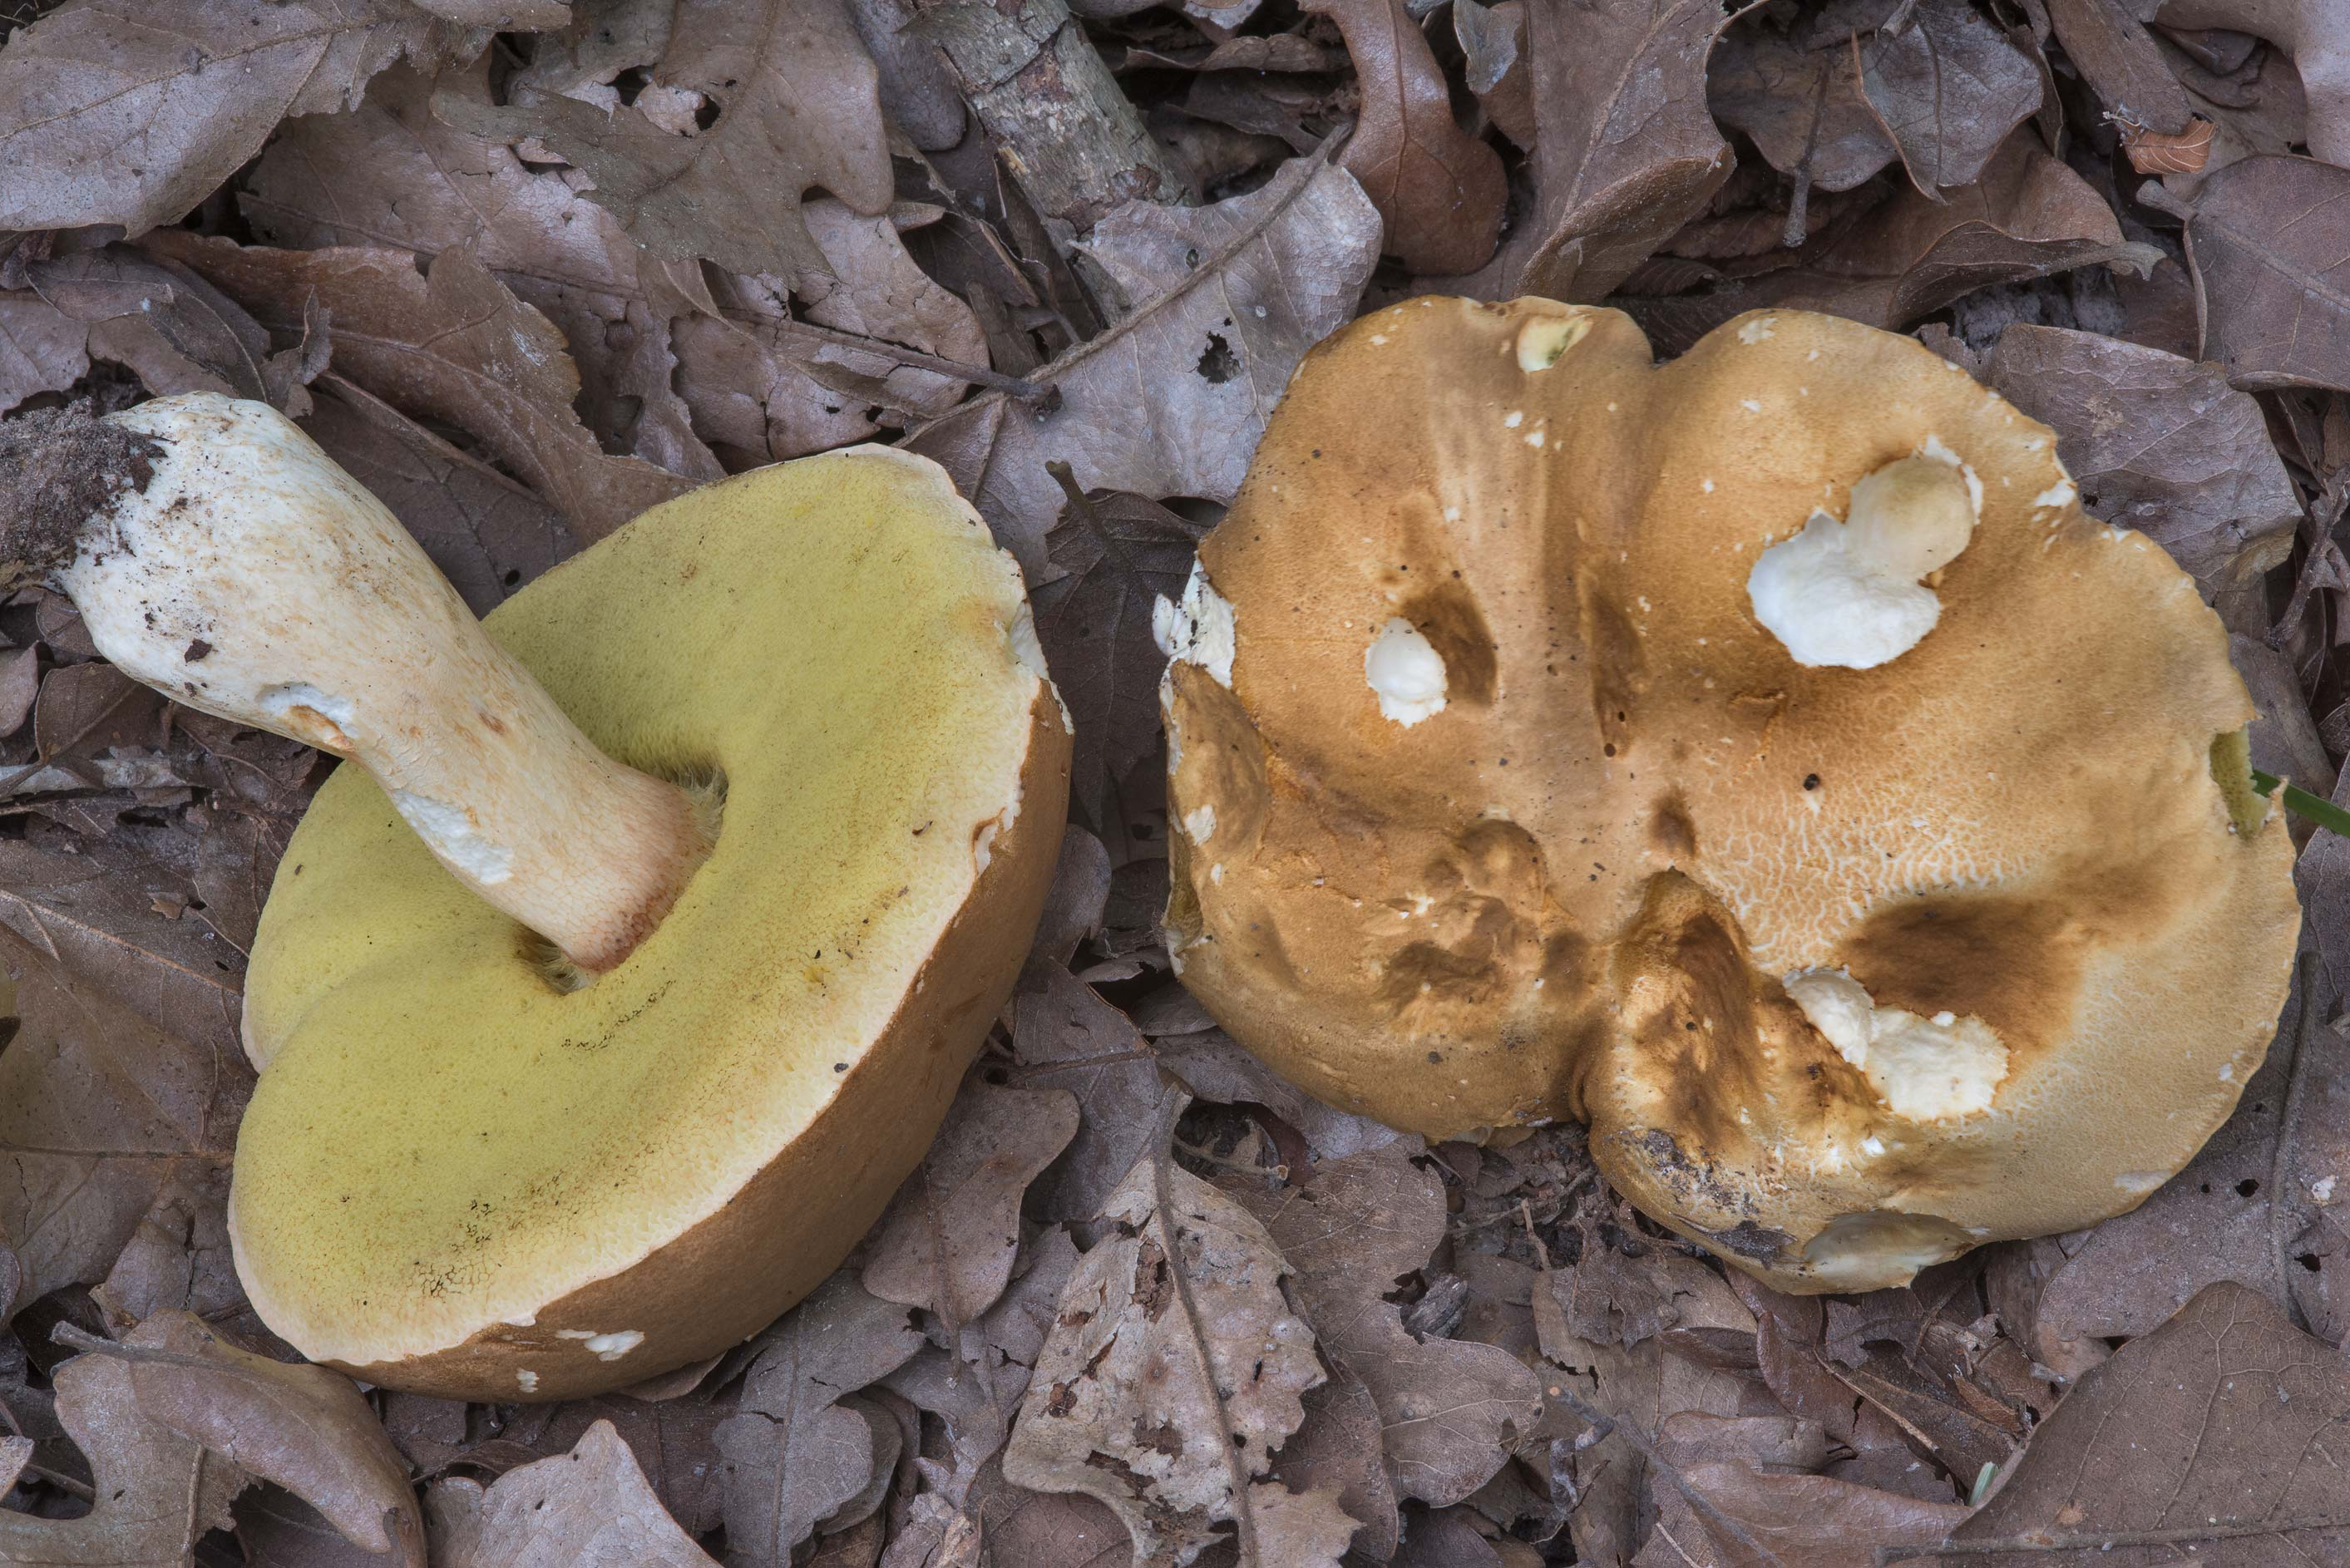 Porcini bolete mushrooms (Boletus edulis group...Creek Park. College Station, Texas